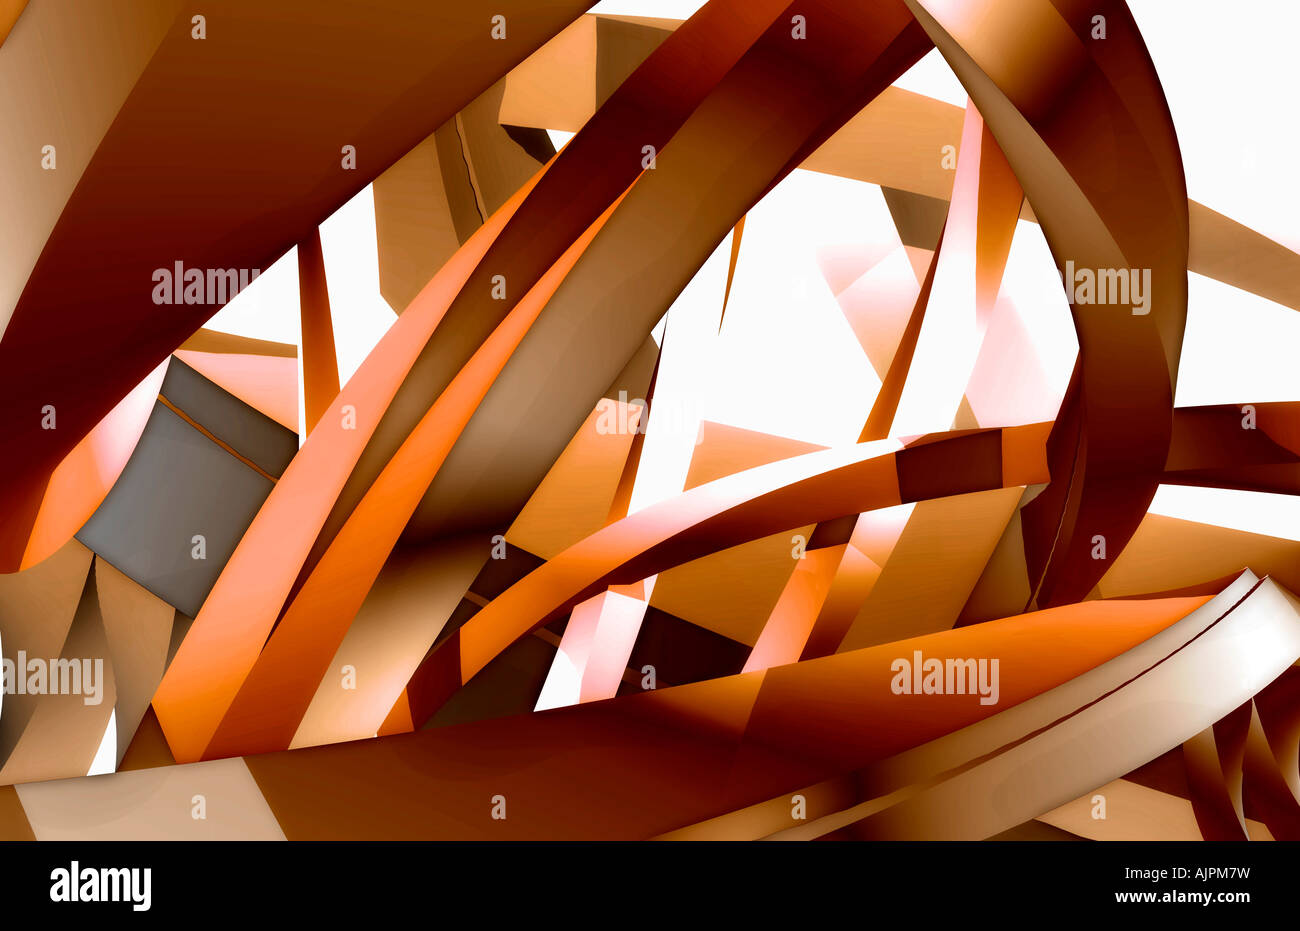 Close-up view of an abstract design - Stock Image